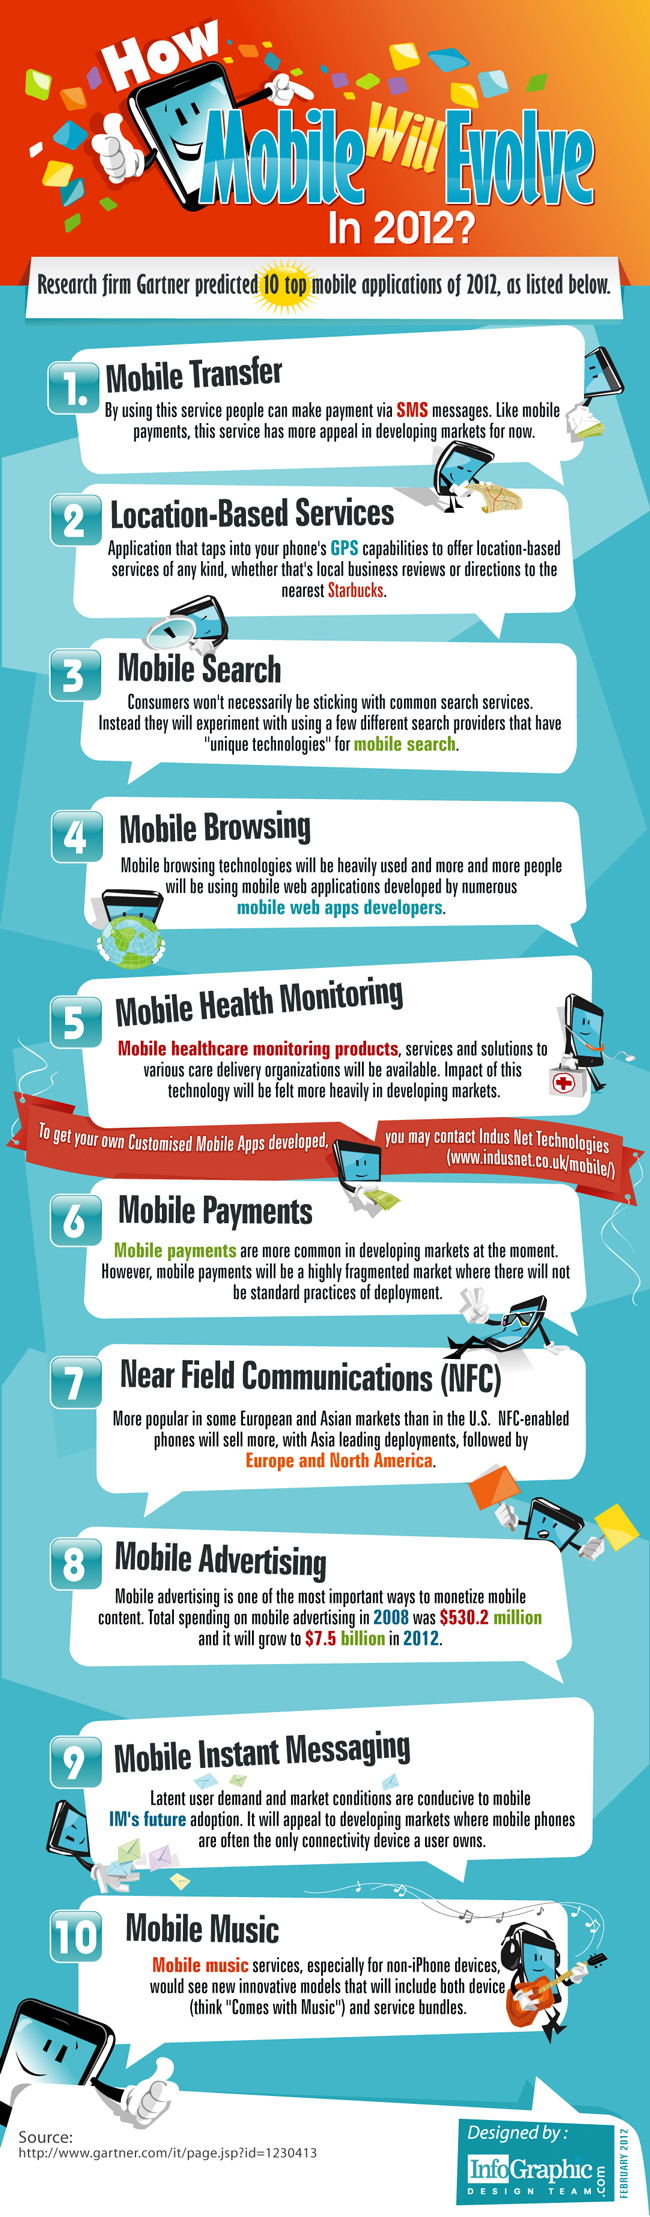 How will mobile evolve in 2012? Research firm Gartner predicted 10 top mobile applications of 2012